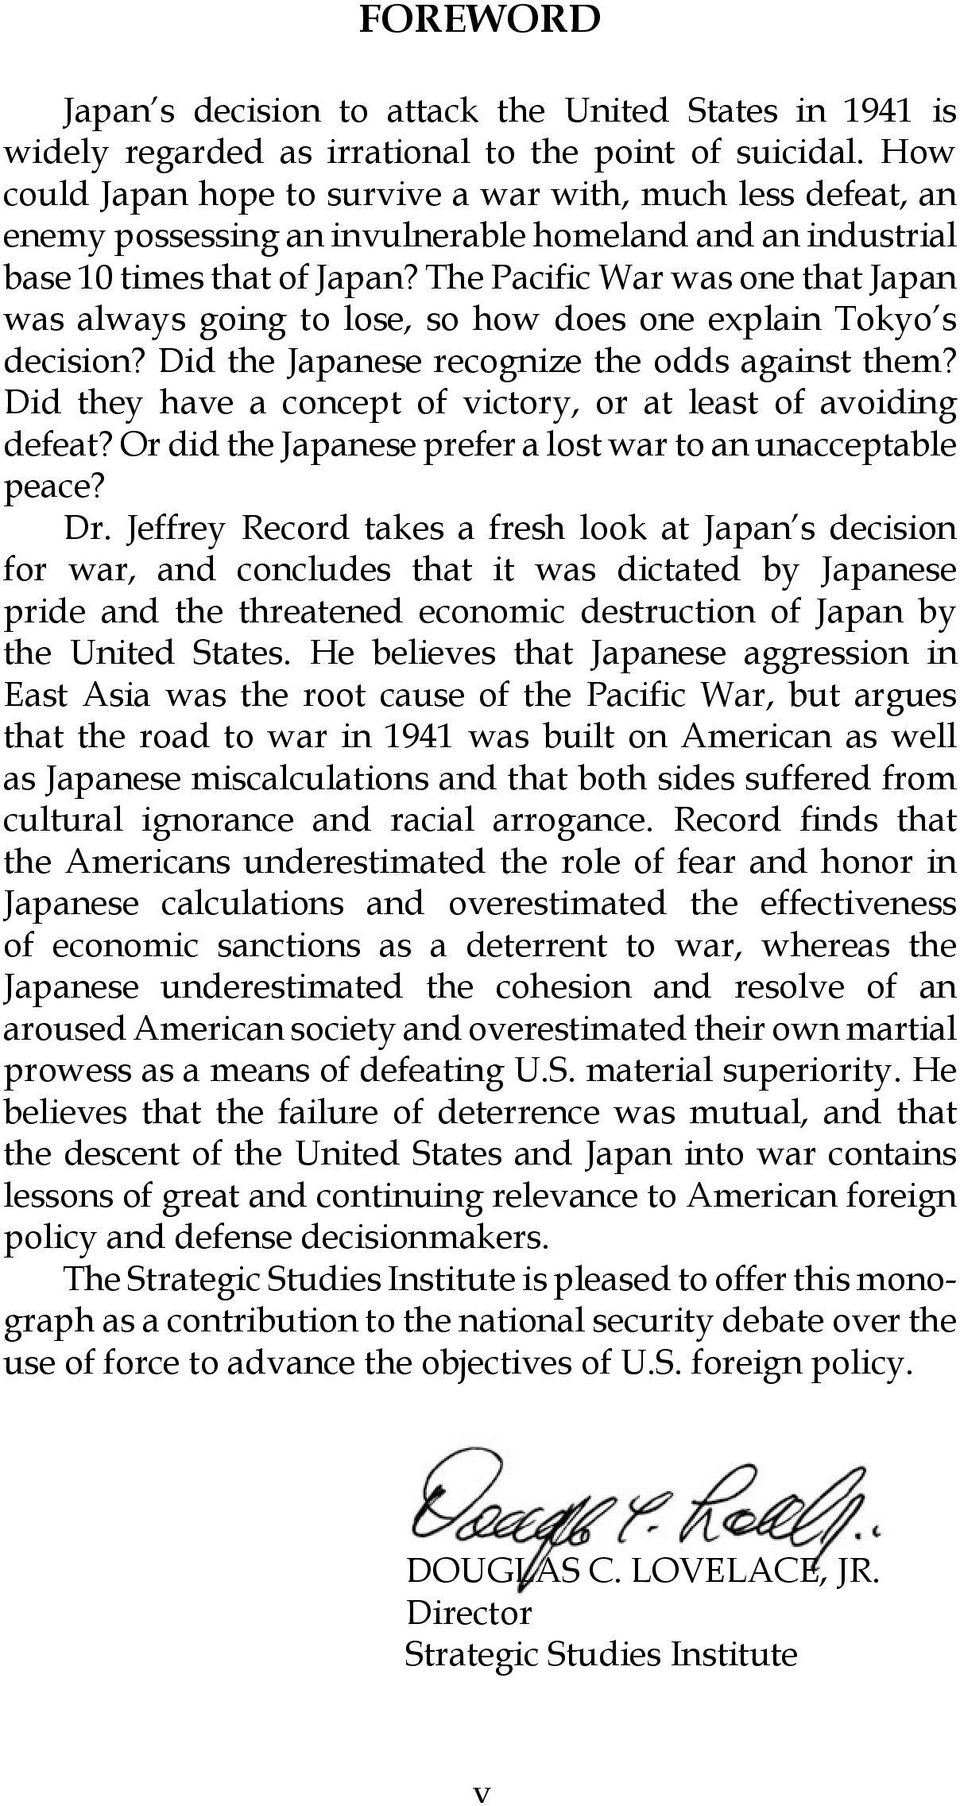 The Pacific War was one that Japan was always going to lose, so how does one explain Tokyo s decision? Did the Japanese recognize the odds against them?